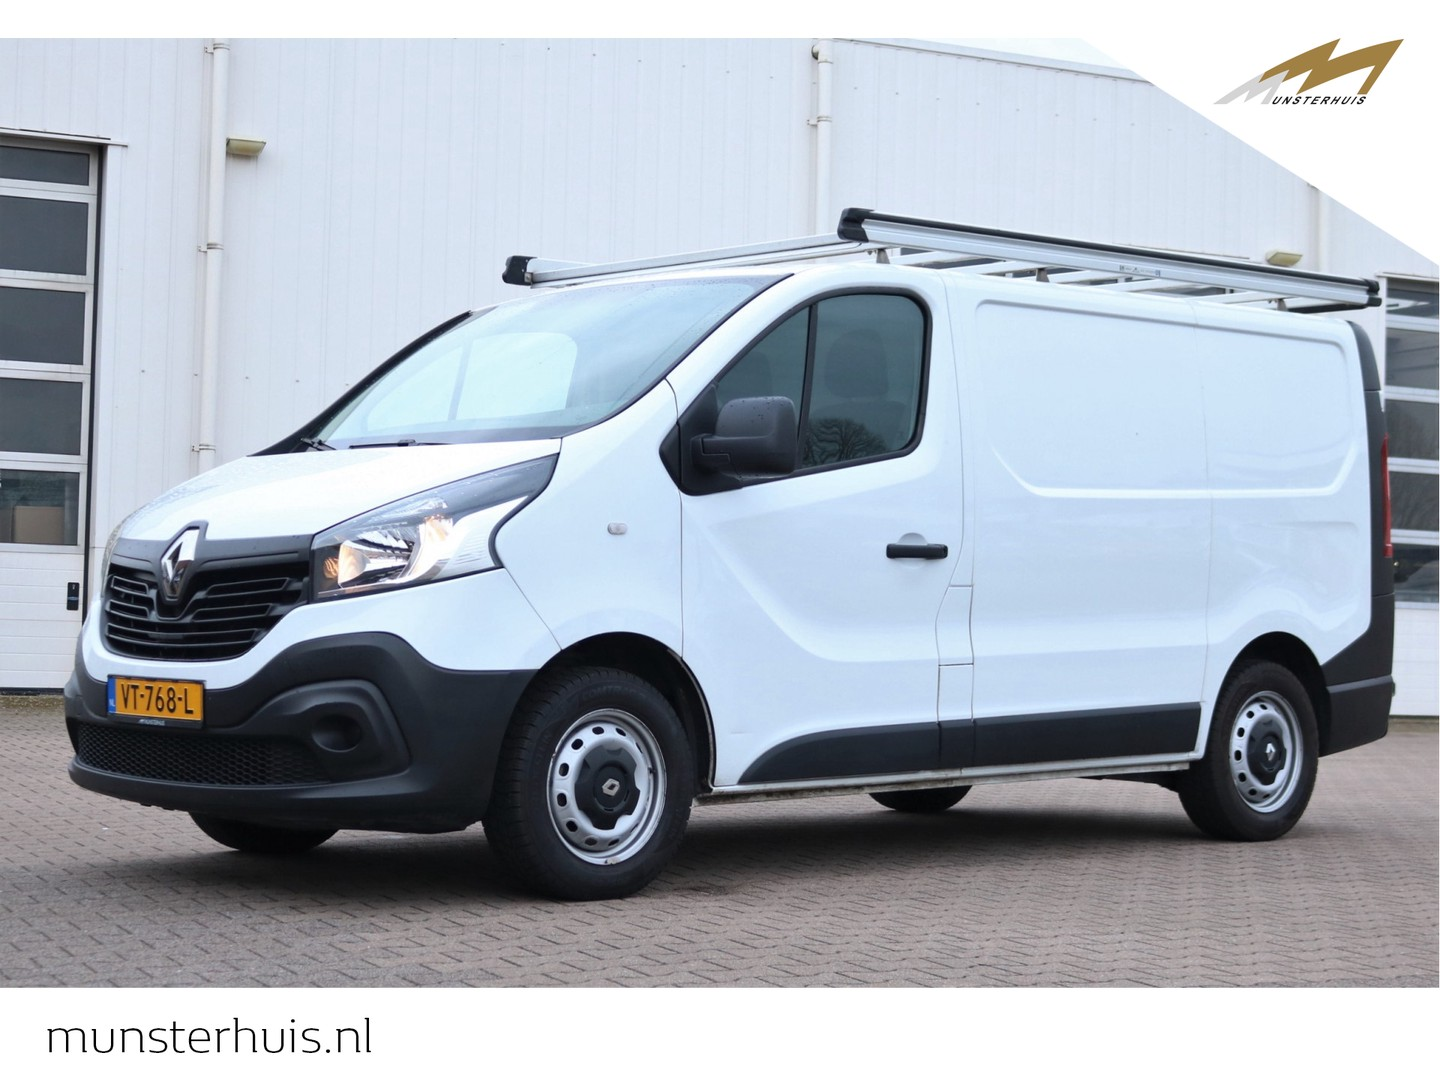 Renault Trafic Gb l1h1 t27 dci 95 comfort - imperiaal - all-season banden